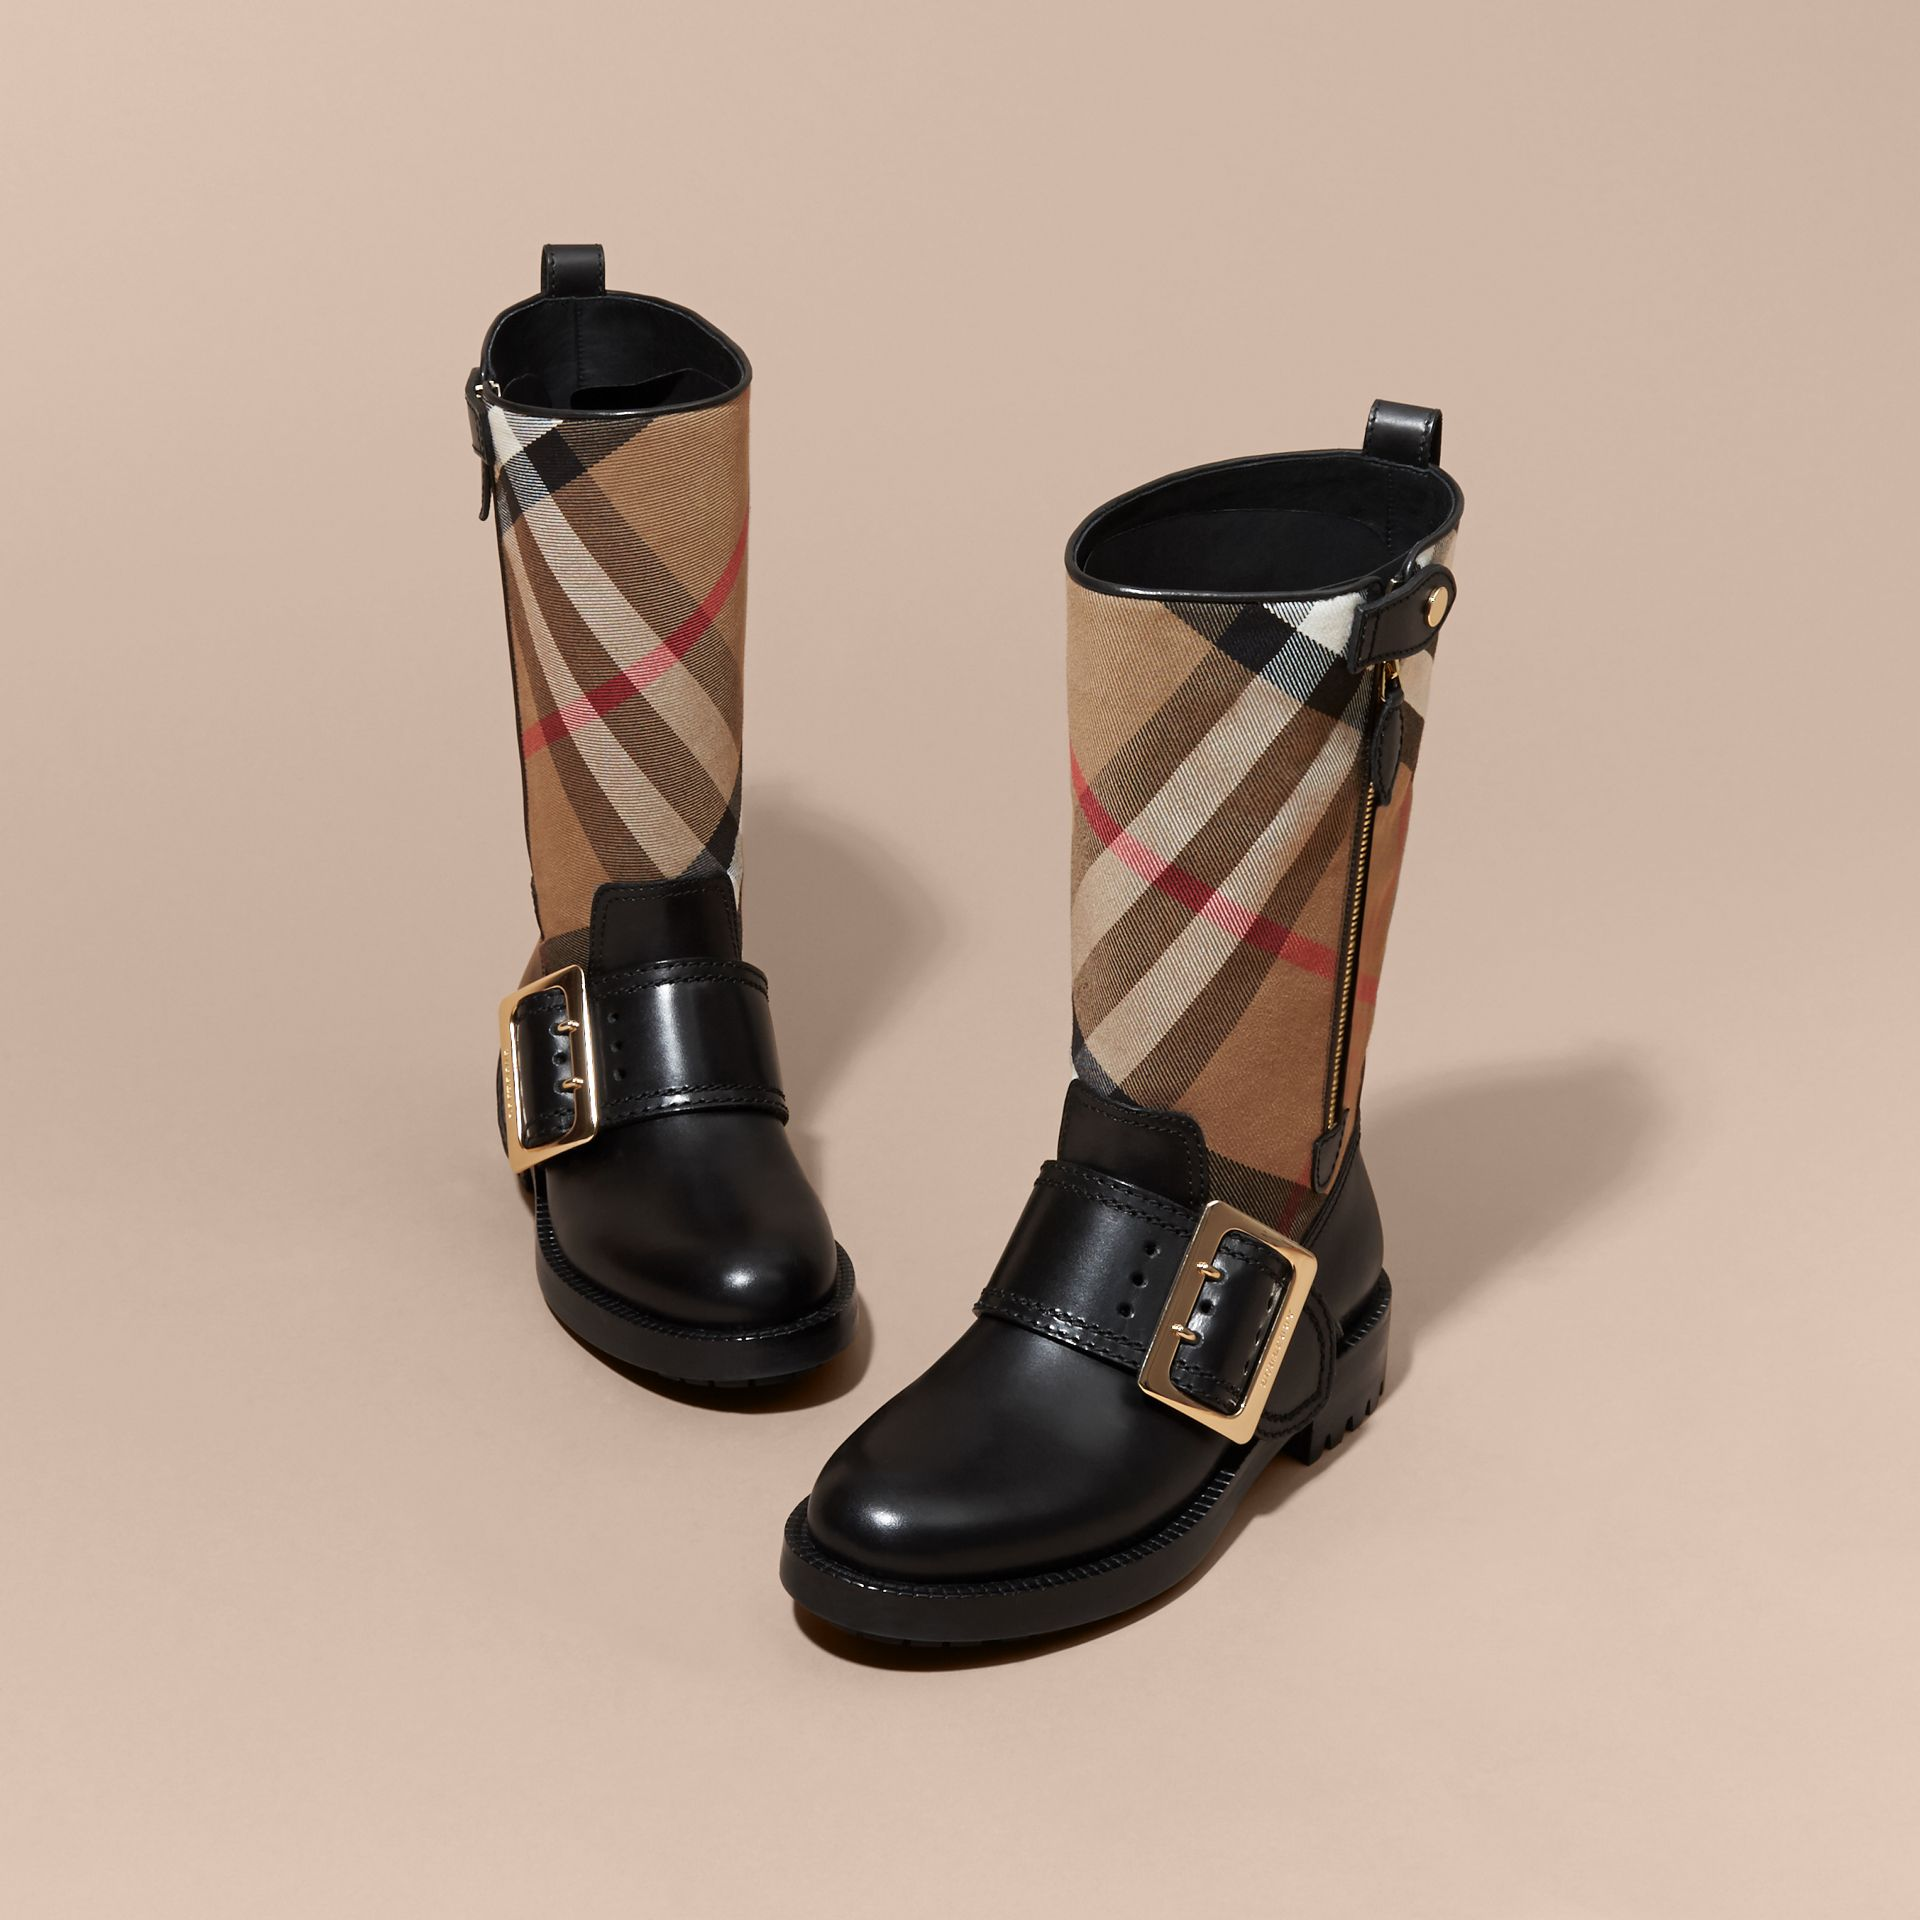 House Check Buckle Detail Leather Boots in Classic - Women | Burberry - gallery image 3